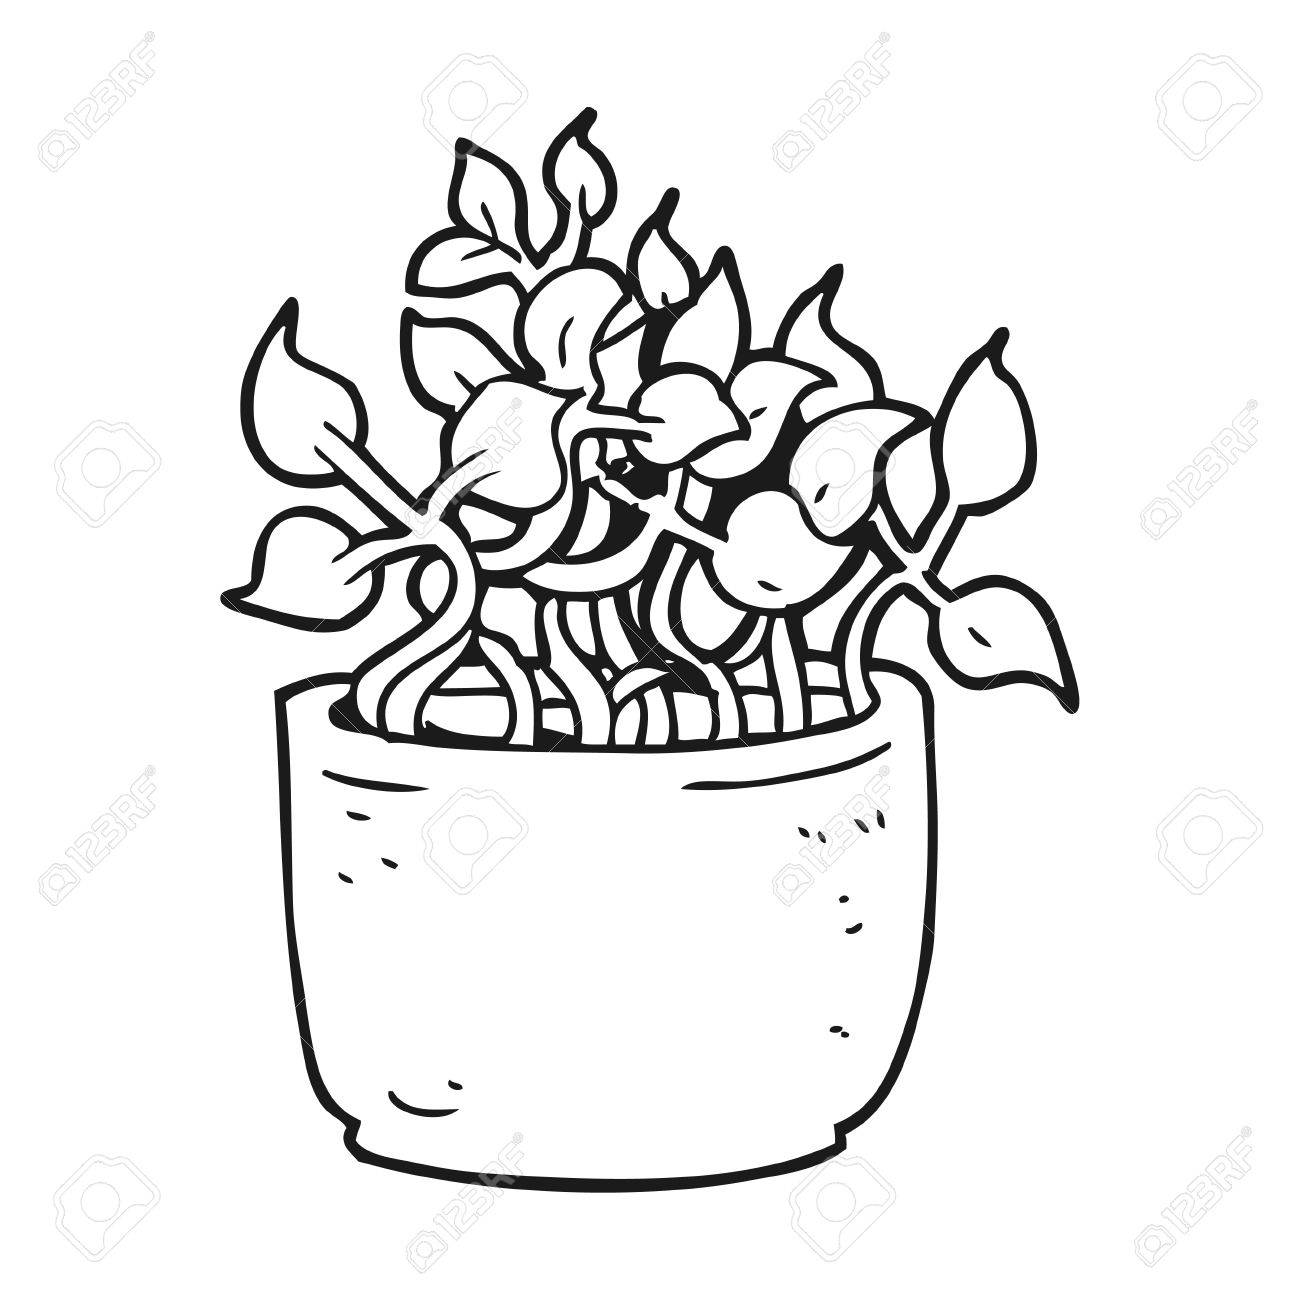 freehand drawn black and white cartoon house plant royalty free Black and White Cartoon Tree freehand drawn black and white cartoon house plant stock vector 53194970